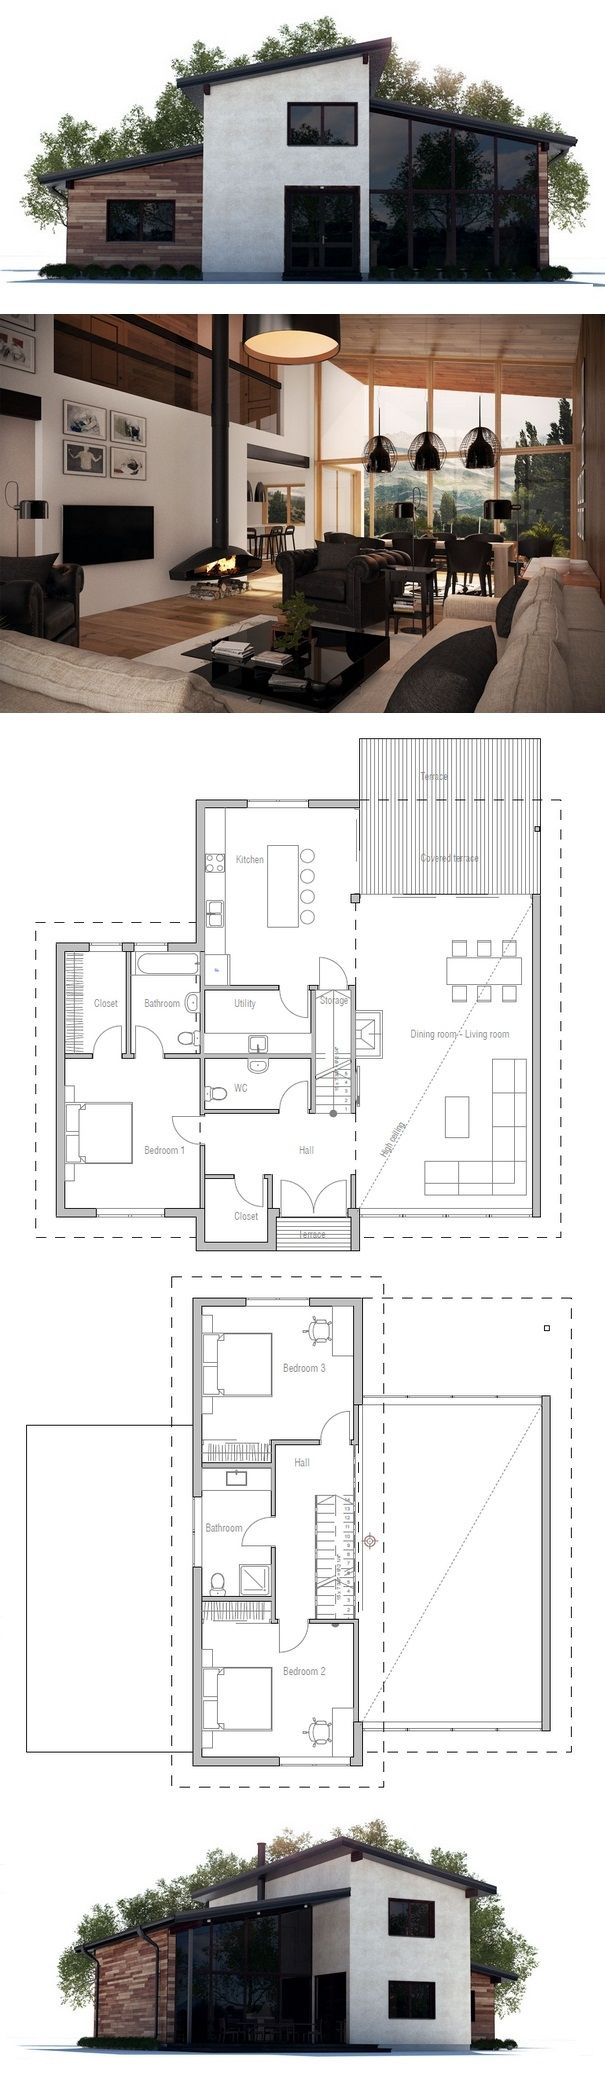 Modern master bedroom floor plans - Great Elevations And Floor Plan I Really Love That The Master Is Separate From The